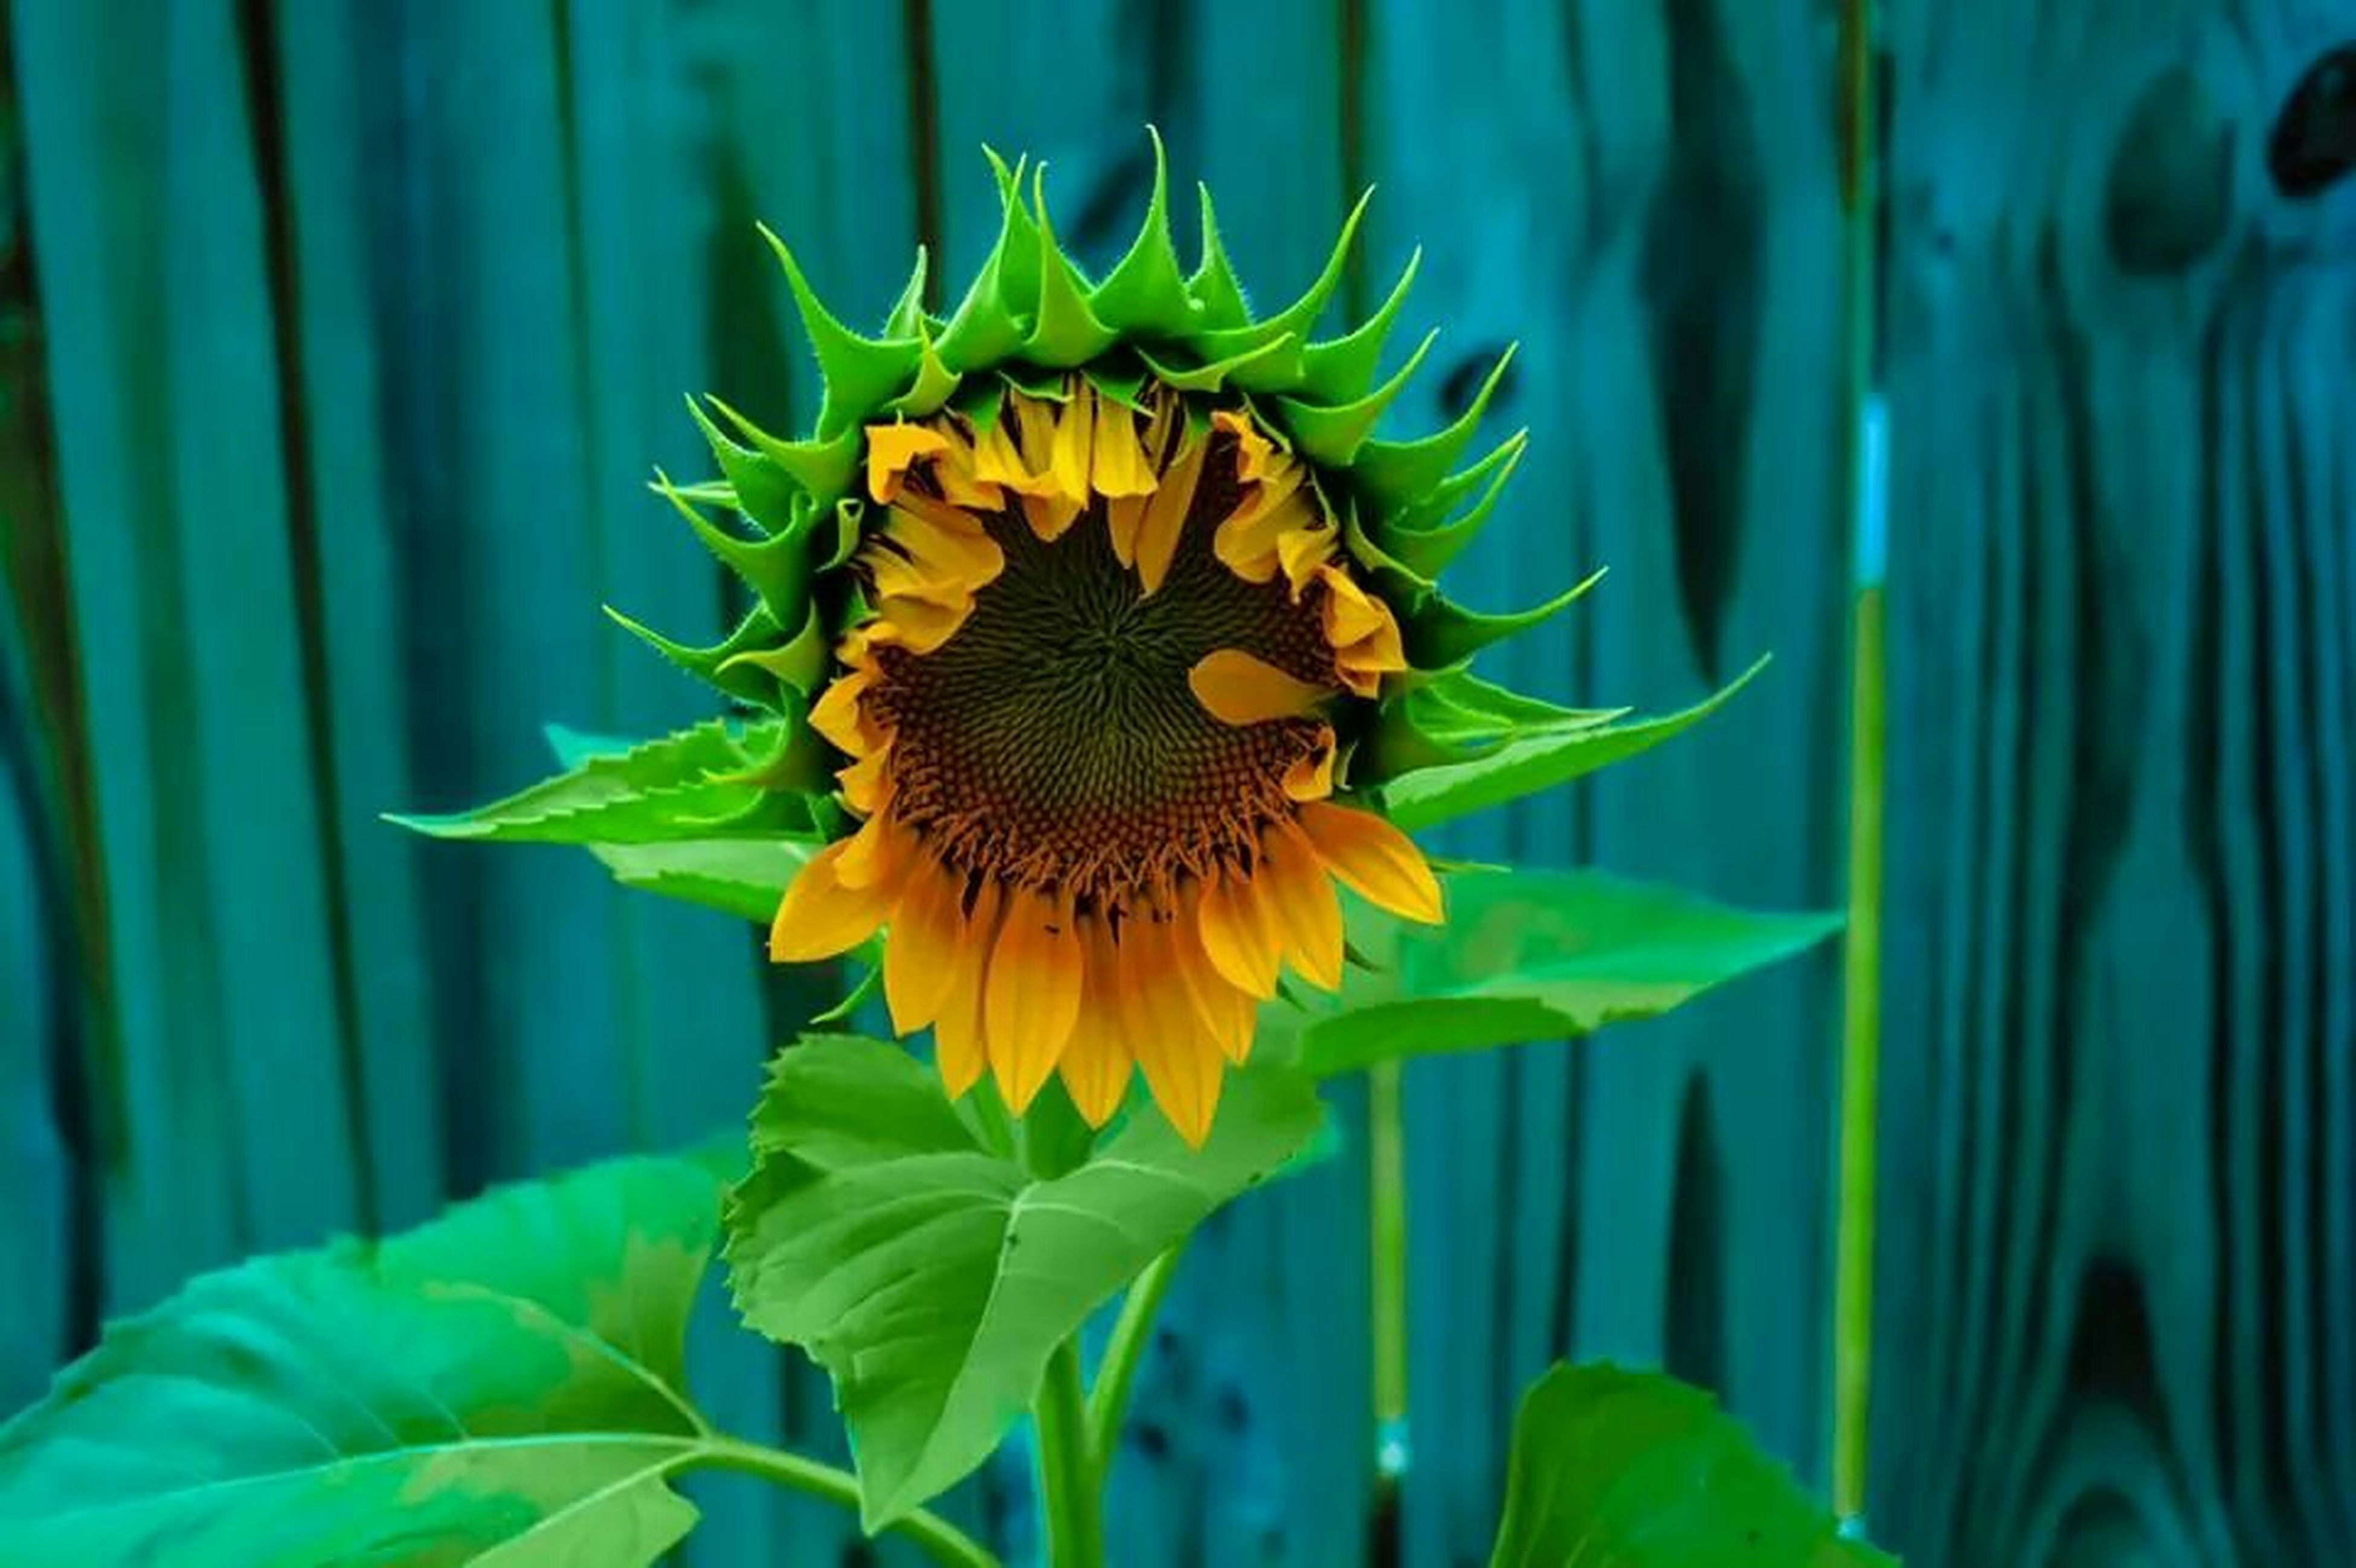 flower, growth, freshness, flower head, fragility, petal, plant, leaf, beauty in nature, yellow, sunflower, blooming, single flower, close-up, nature, green color, focus on foreground, in bloom, stem, field